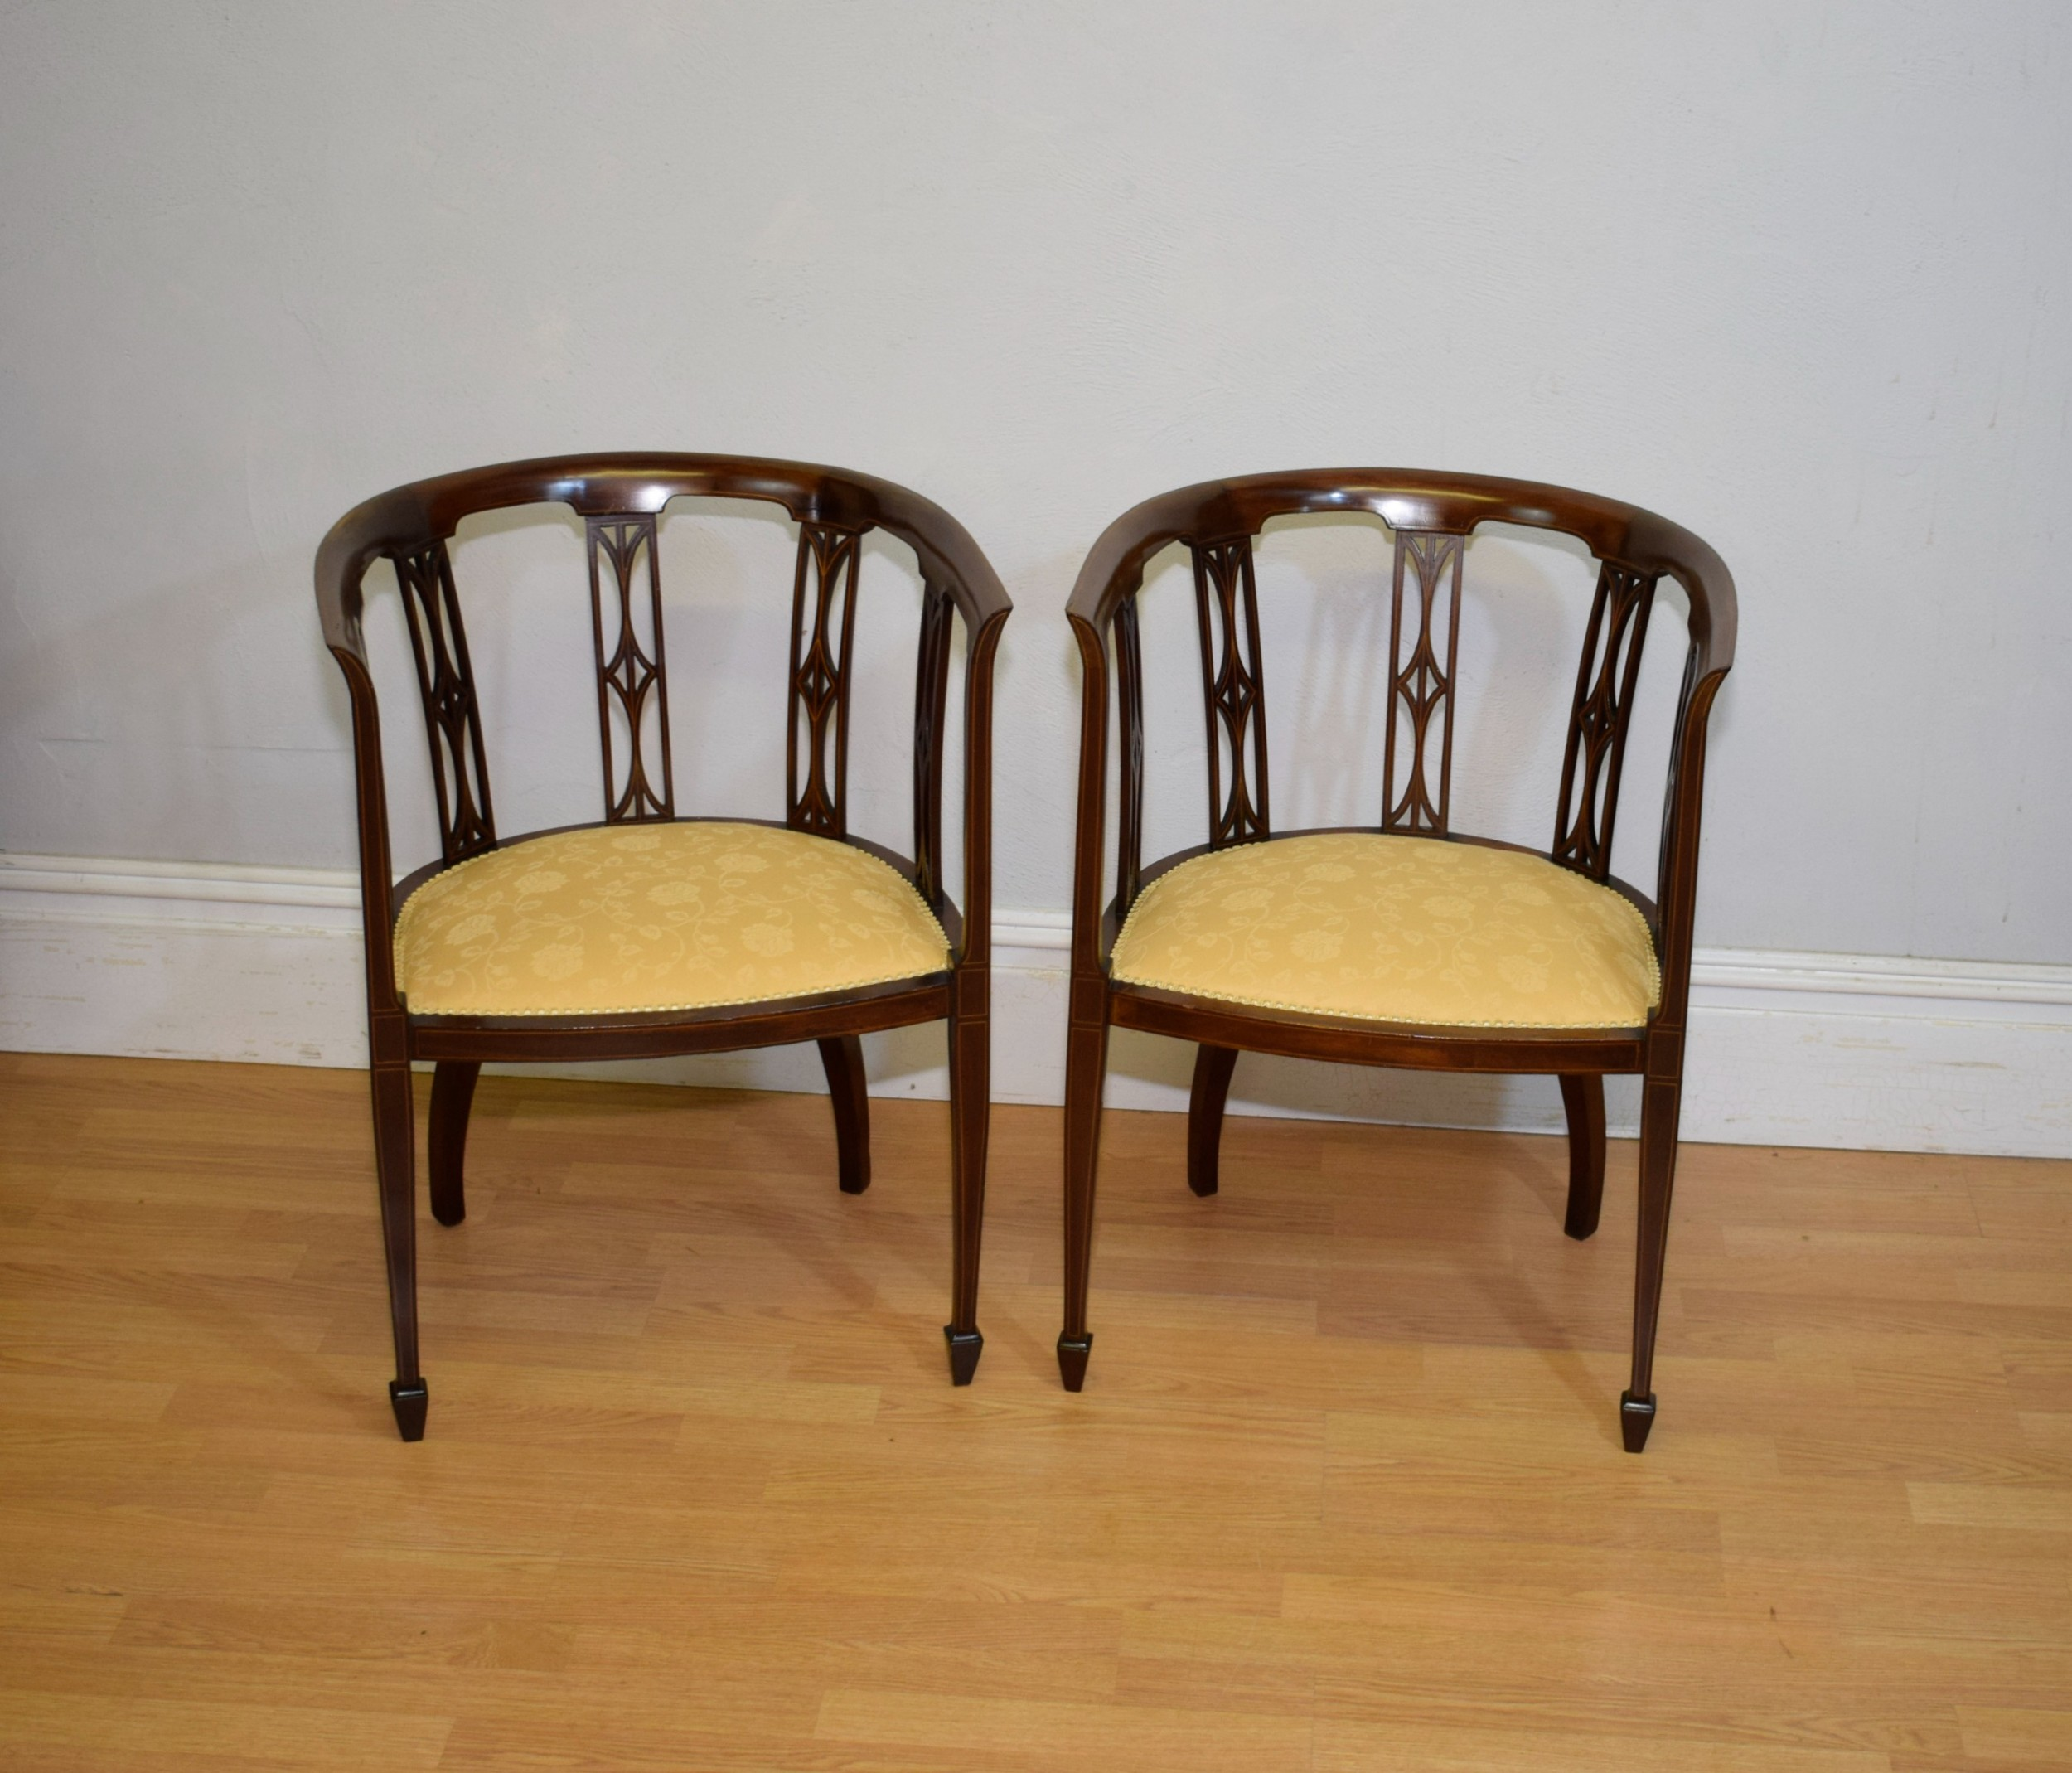 pair of edwardian inlaid tub chairs